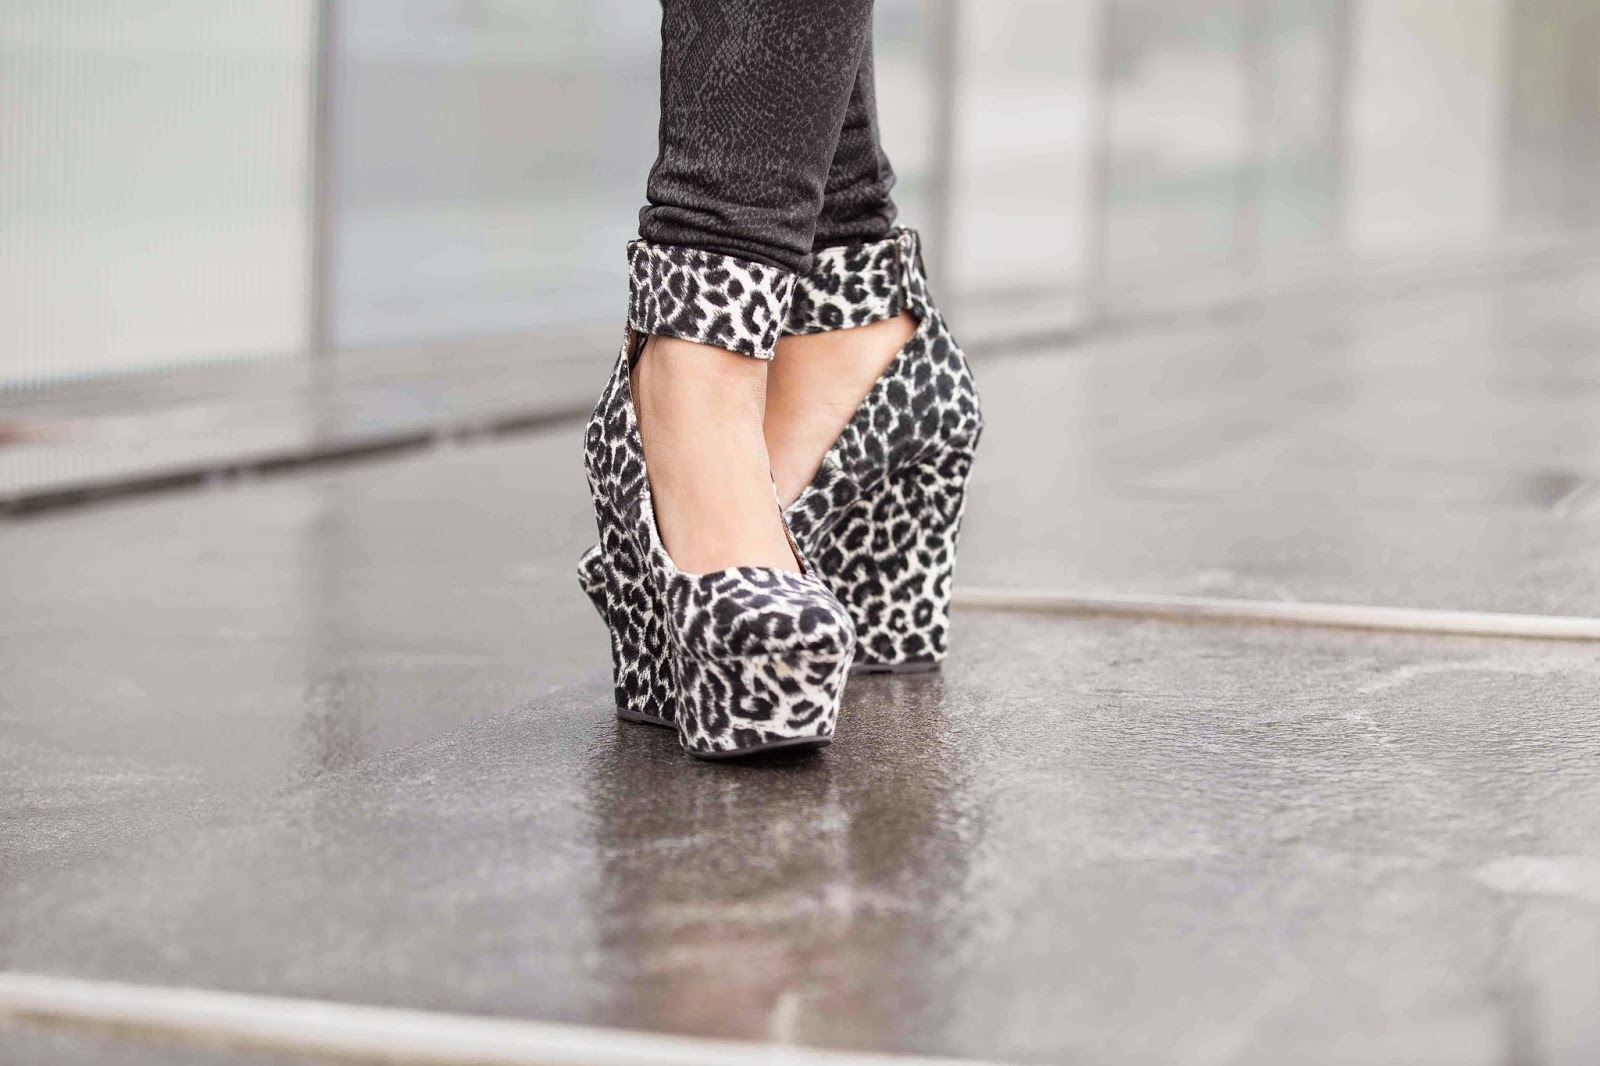 wedges, leopard print wedges, ankle strap wedges, c label wedges, ananya kiran, shoe blogger